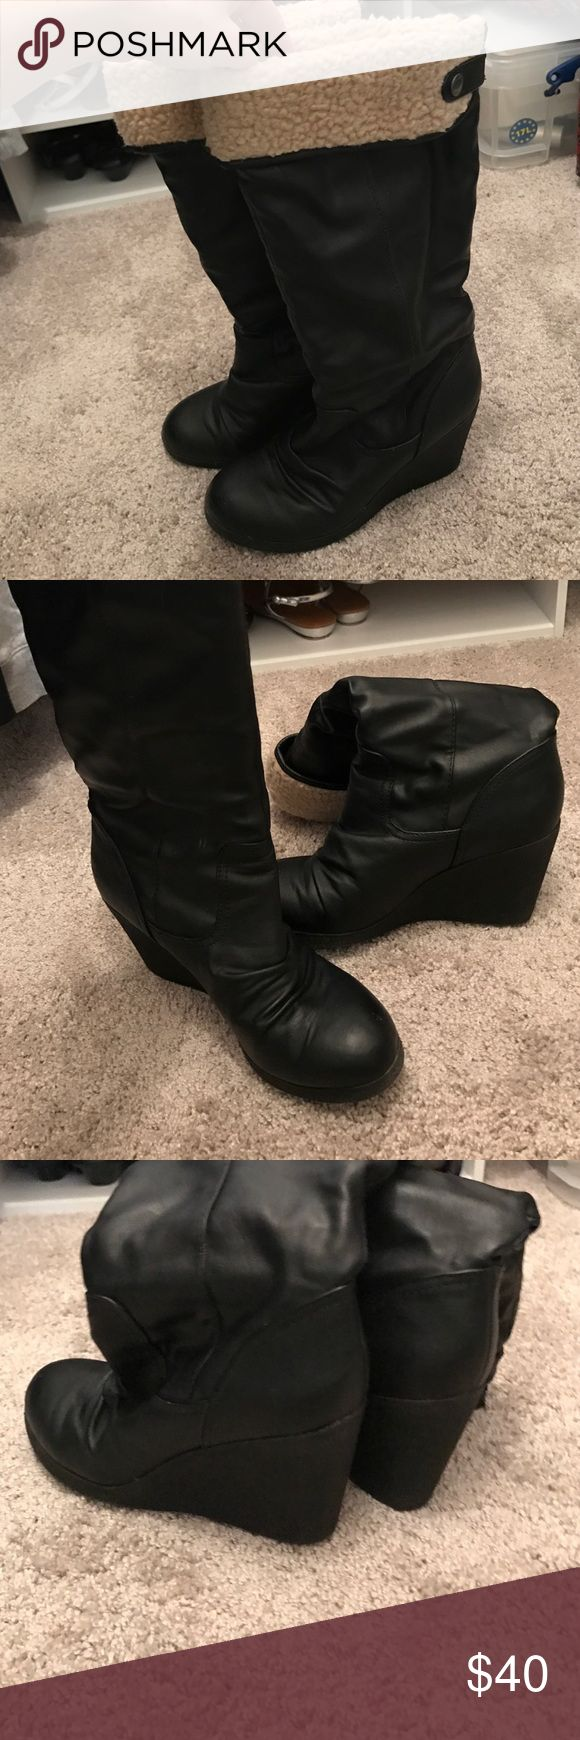 Victoria Secret black wedge boot Super cute and comfortable black wedge boot with sheep wool cuff. Purchased from Victoria Secret catalog when they used to sell awesome shoes and coats. Excellent condition!! Victoria's Secret Shoes Winter & Rain Boots